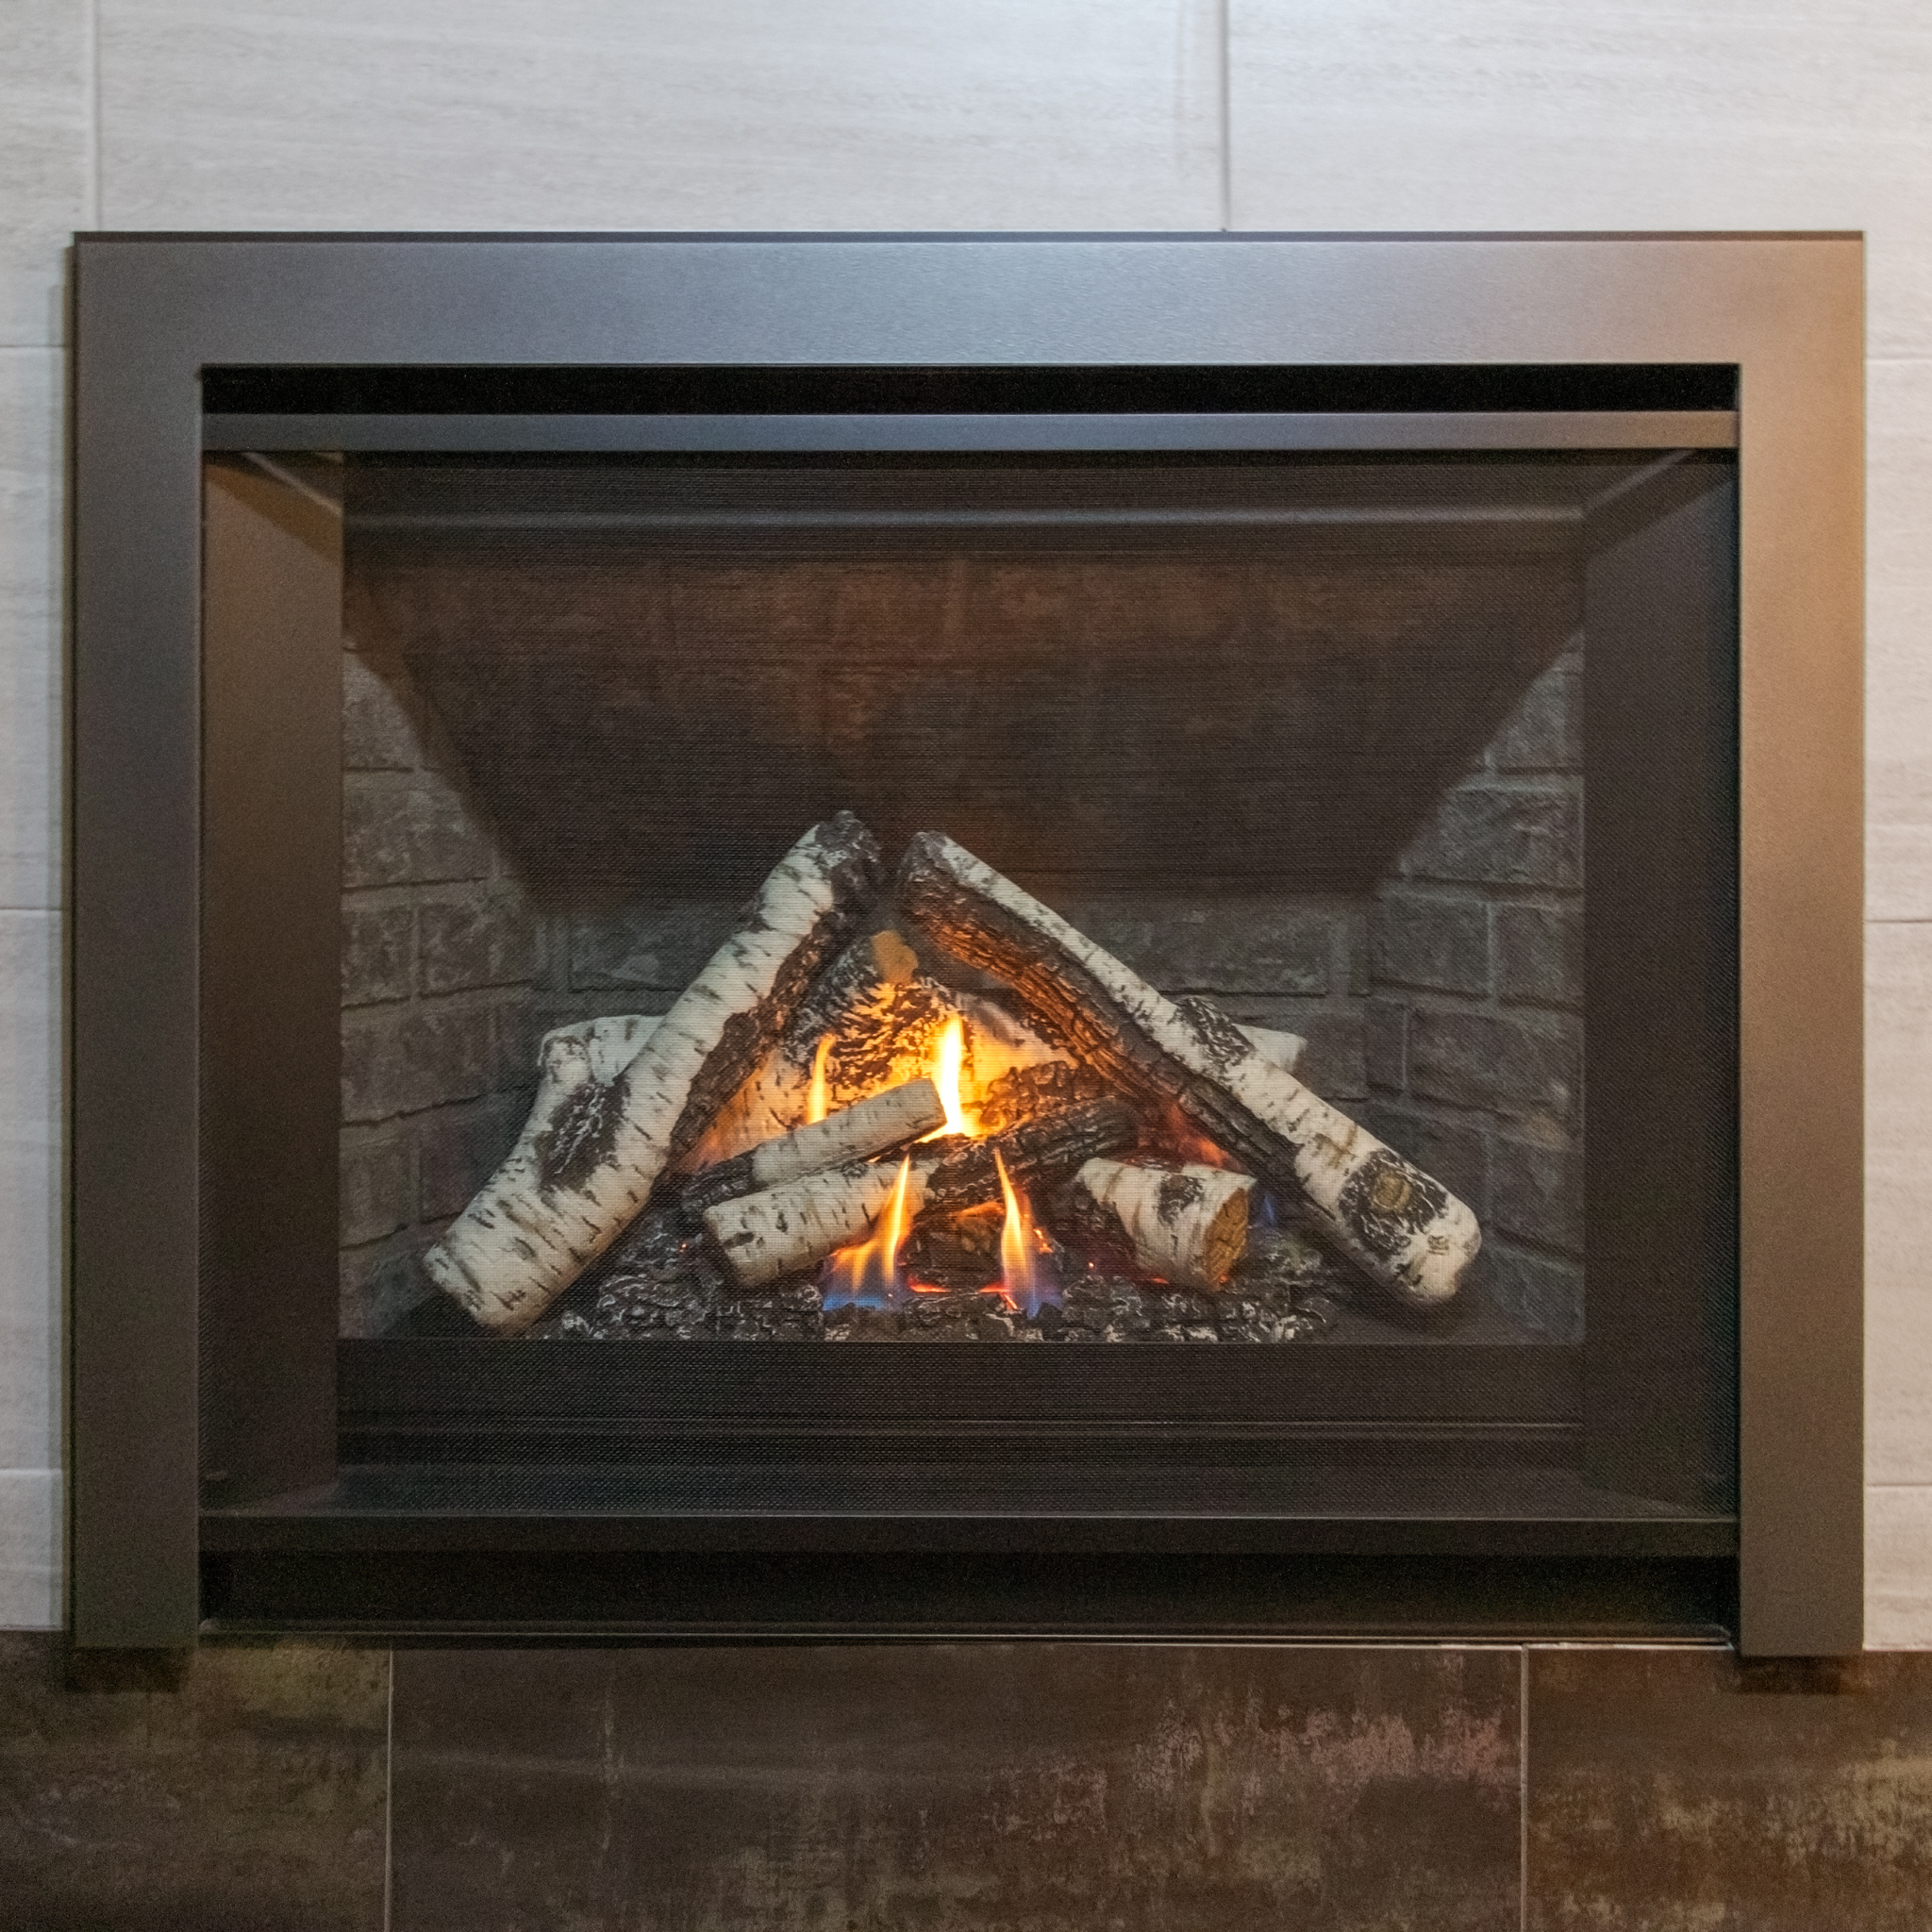 Valor H3 - · Direct Vent Gas Fireplace - 25,000 BTU· Charcoal Brick Firebox Panels· Birch Logs· Clearview Front - Vintage Iron· Three Sided Backing Plate· Maxitrol Remote Control· Fan - Not Include